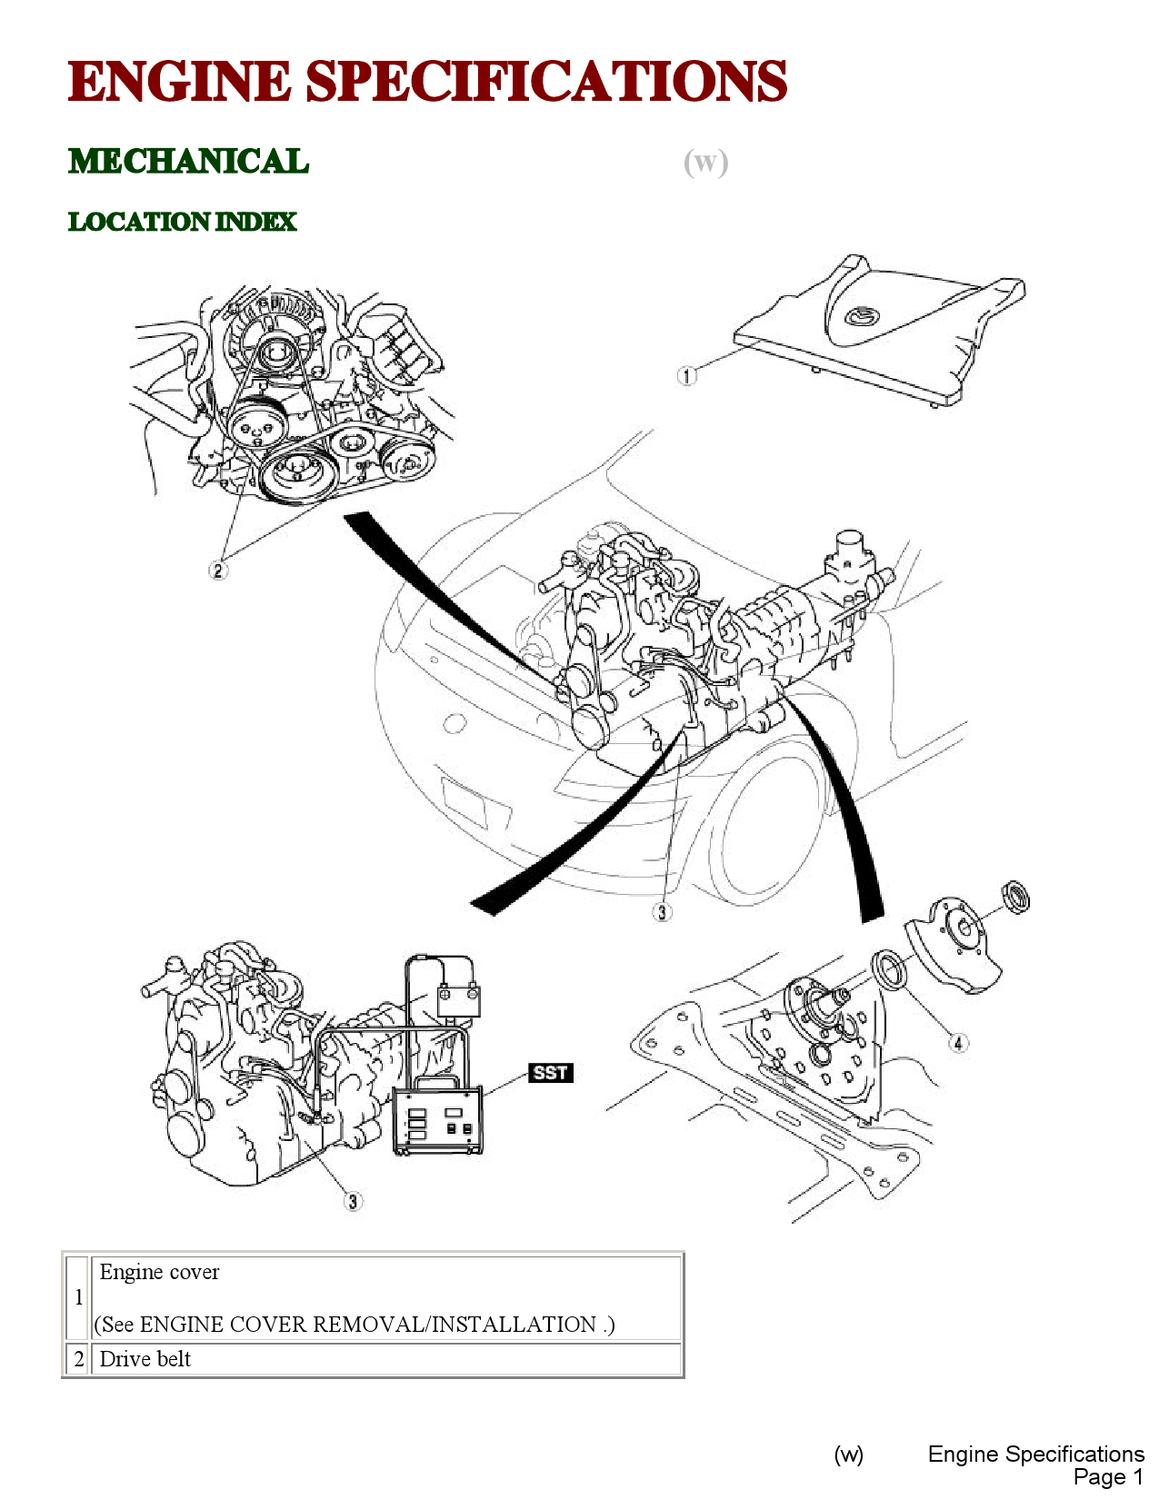 2 6rx8 engine manual by rx8 antiforum issuu